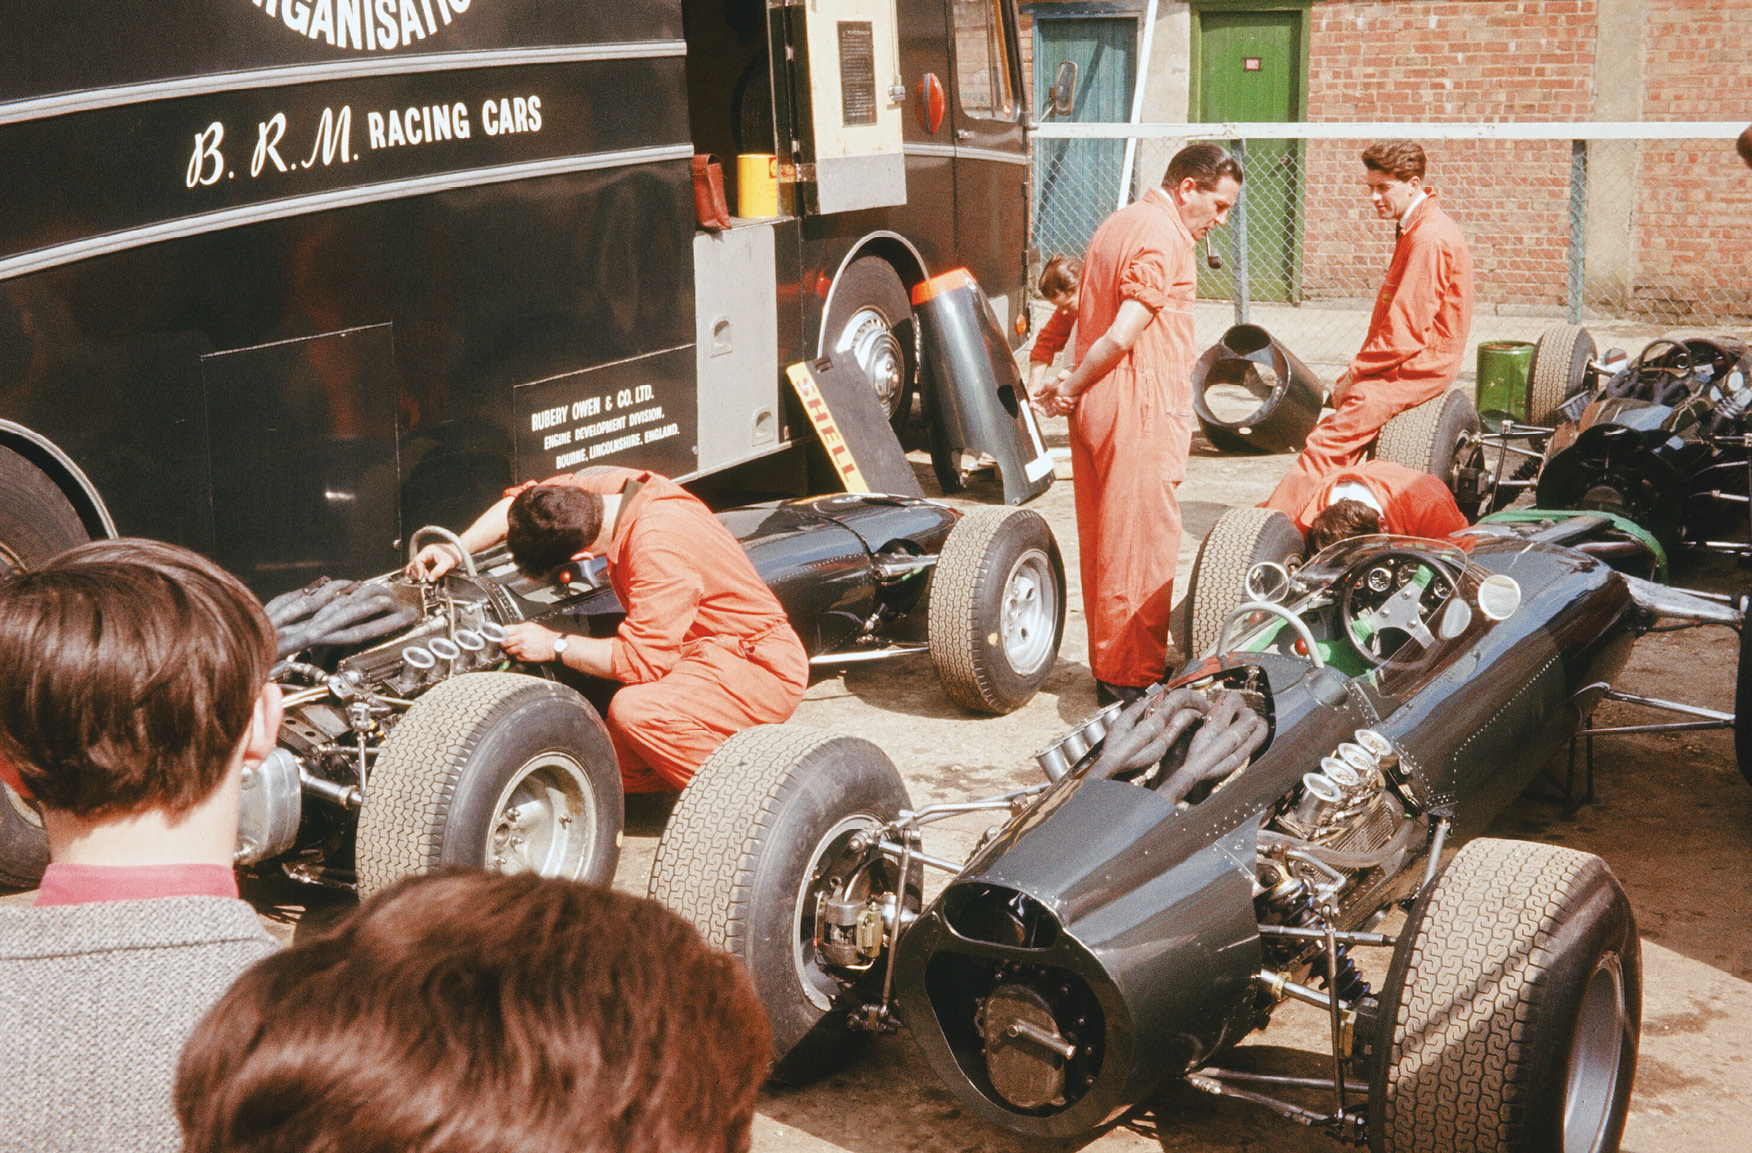 BRM brought three P261s to the British Grand Prix – race chassis for Graham Hill (who finished second) and Jackie Stewart (fifth), plus the usual spare